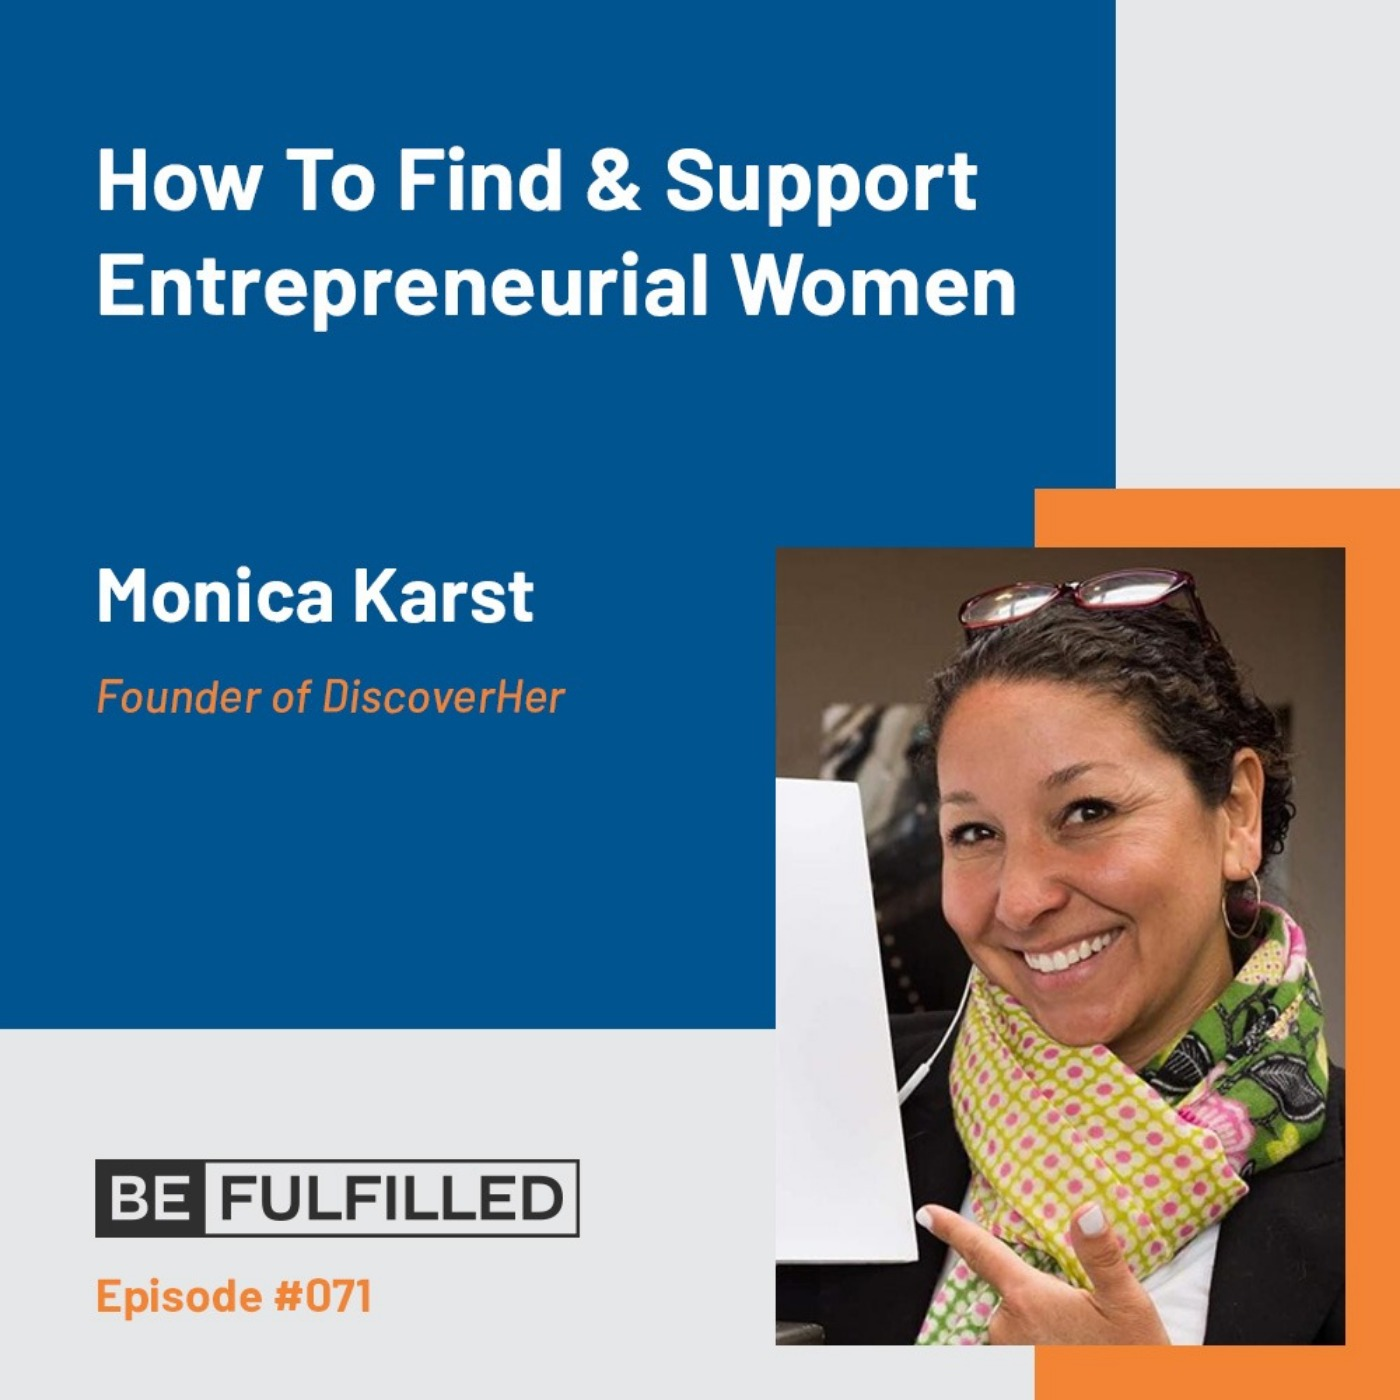 How To Find & Support Entrepreneurial Women - Monica Karst